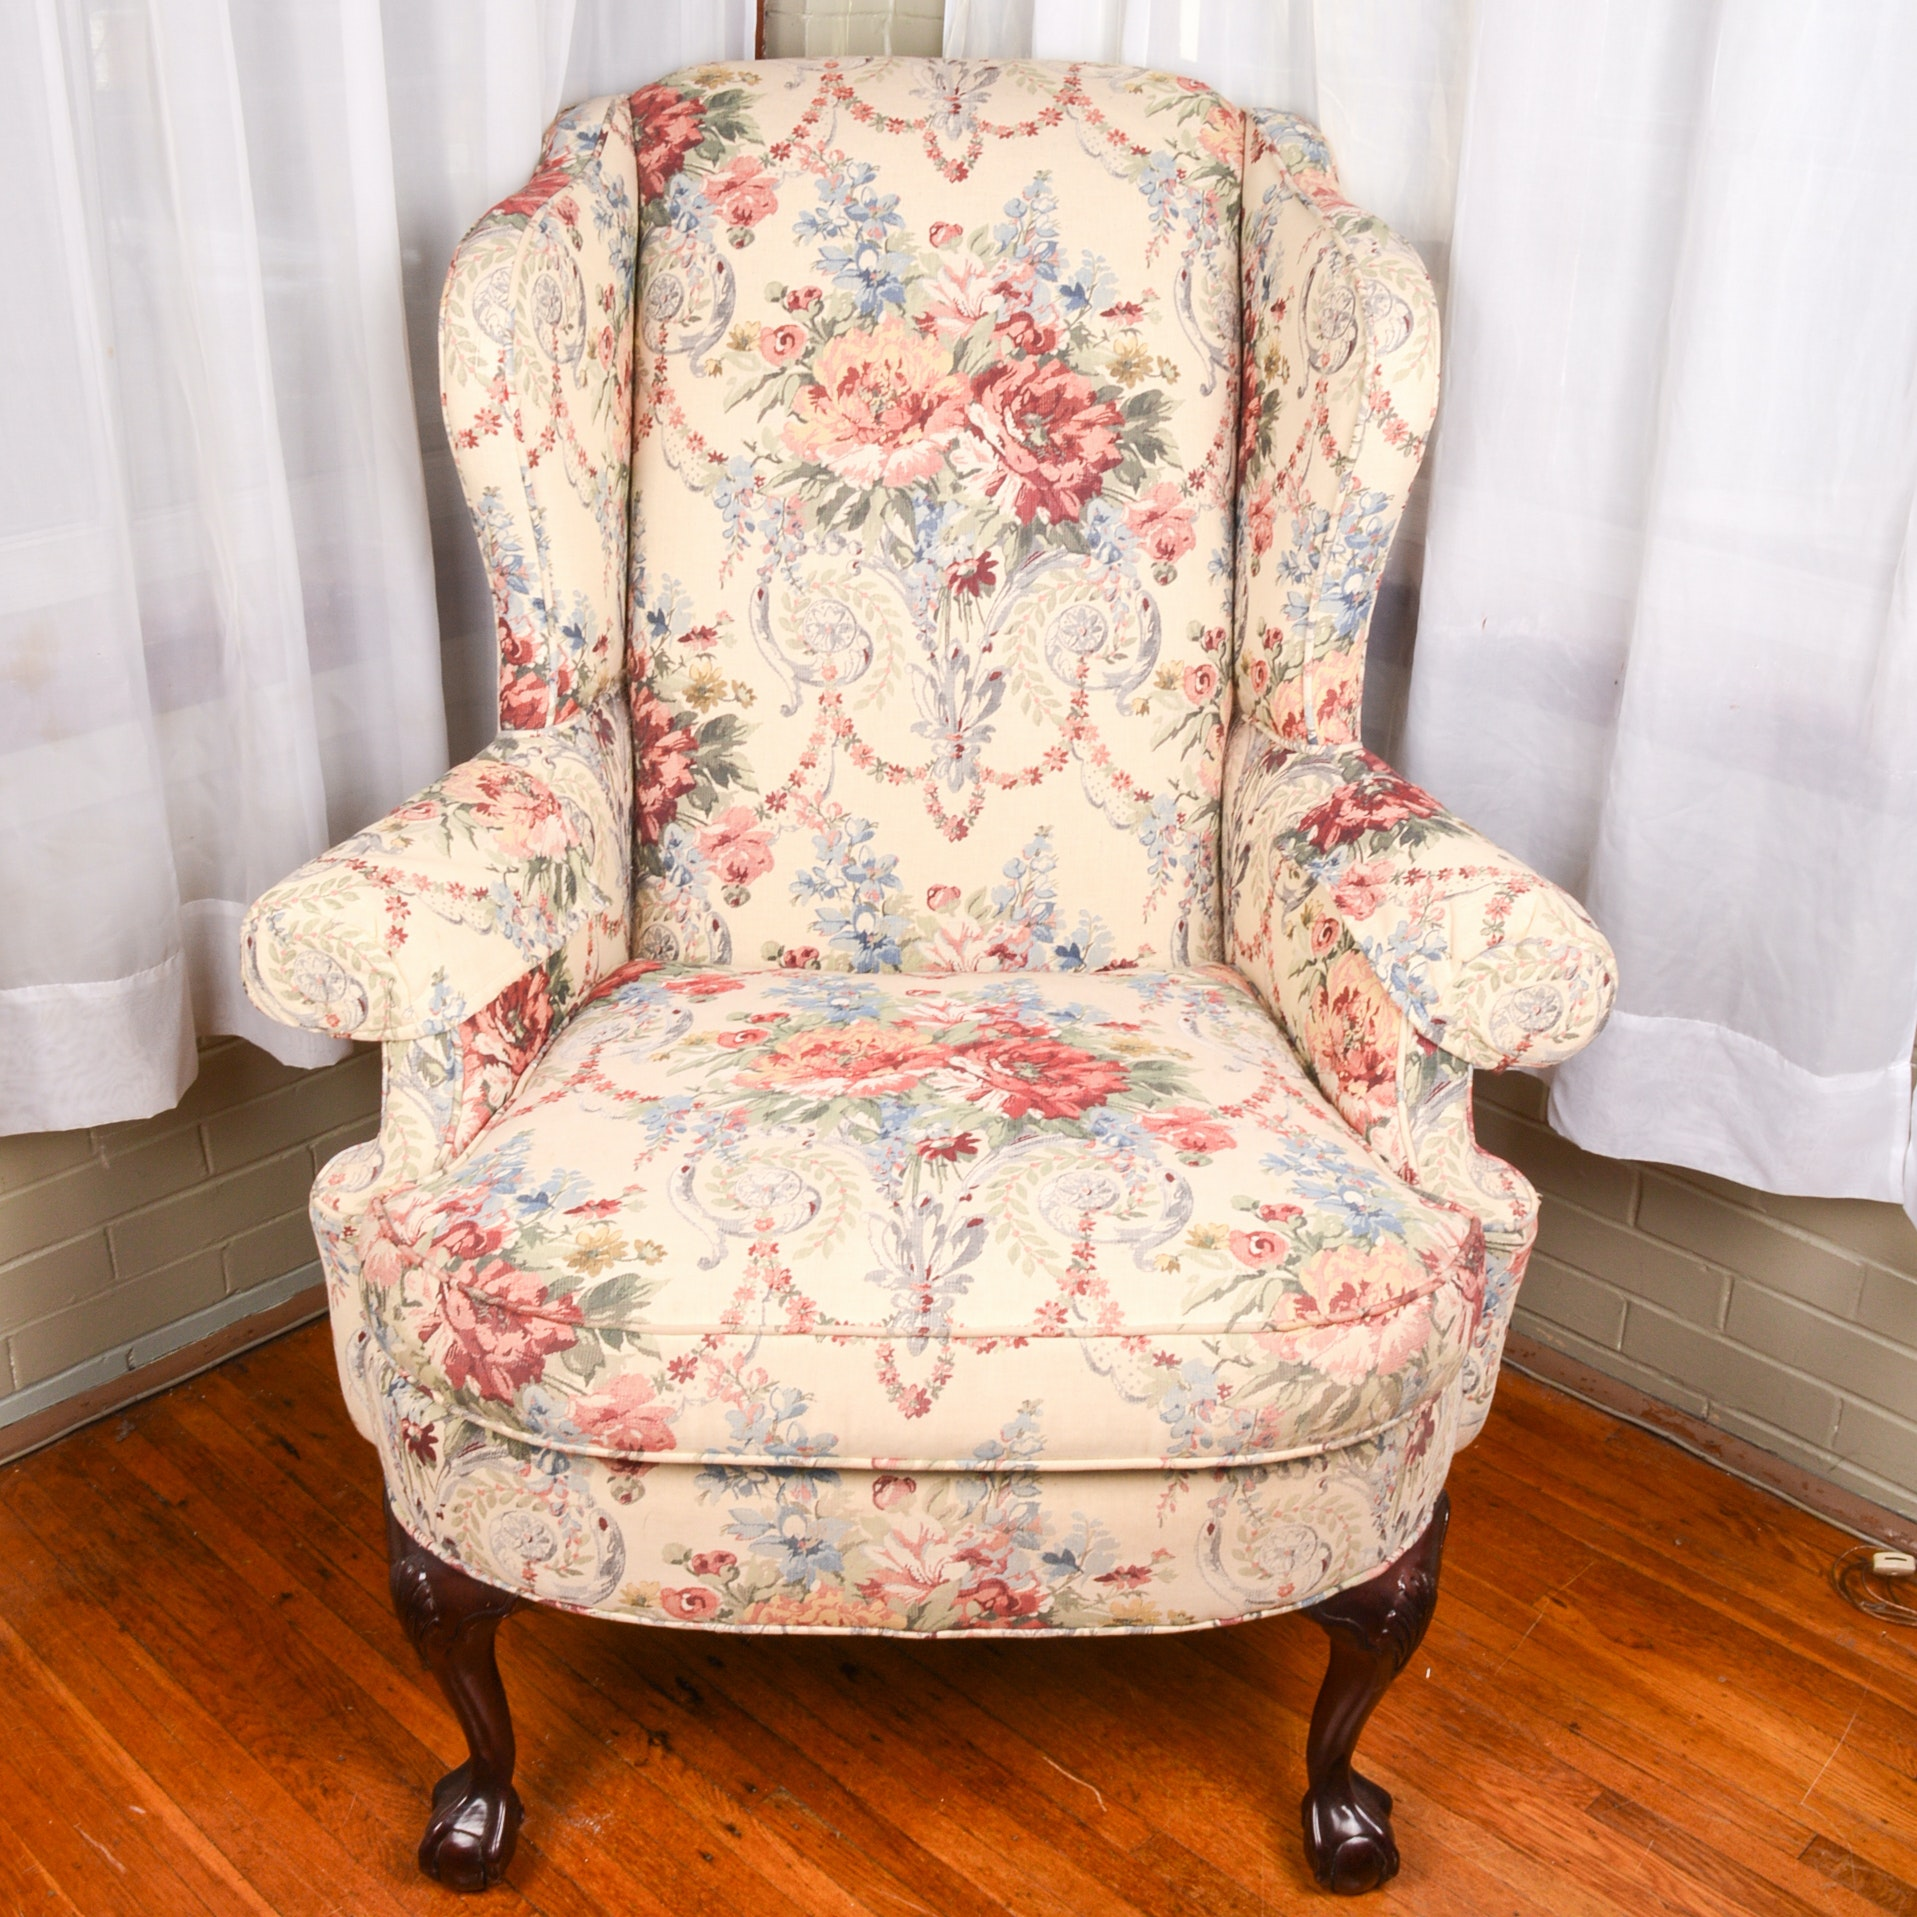 Vintage Chippendale Style Upholstered Wingback Chair By Charleston House ...